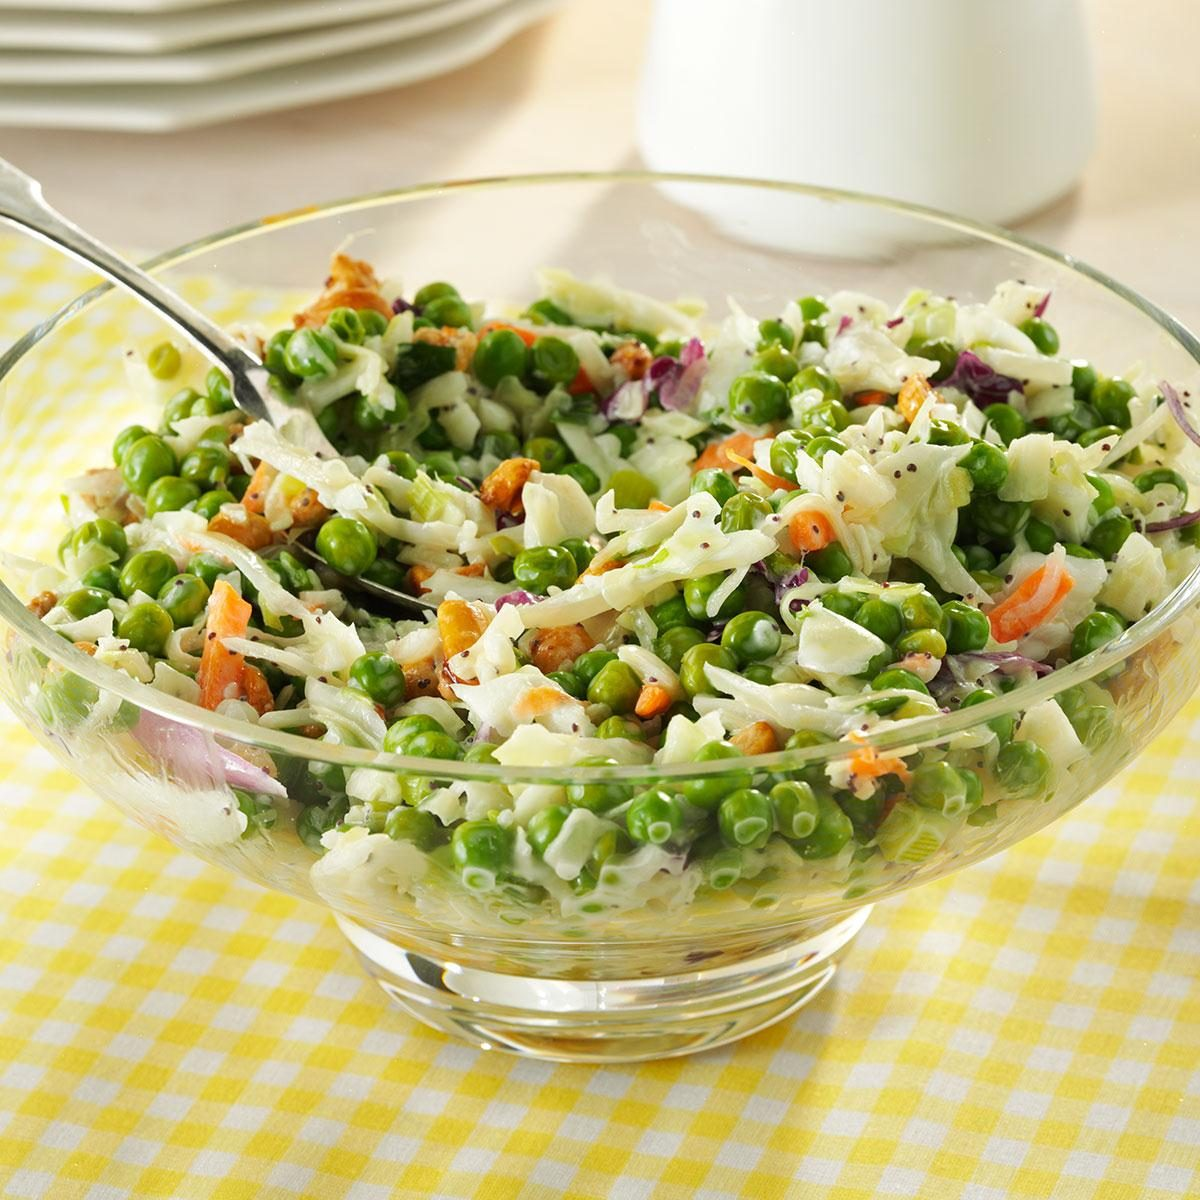 10 Easy Cole Slaw Recipes And Other Cabbage Recipes: Easy Peasy Slaw Recipe